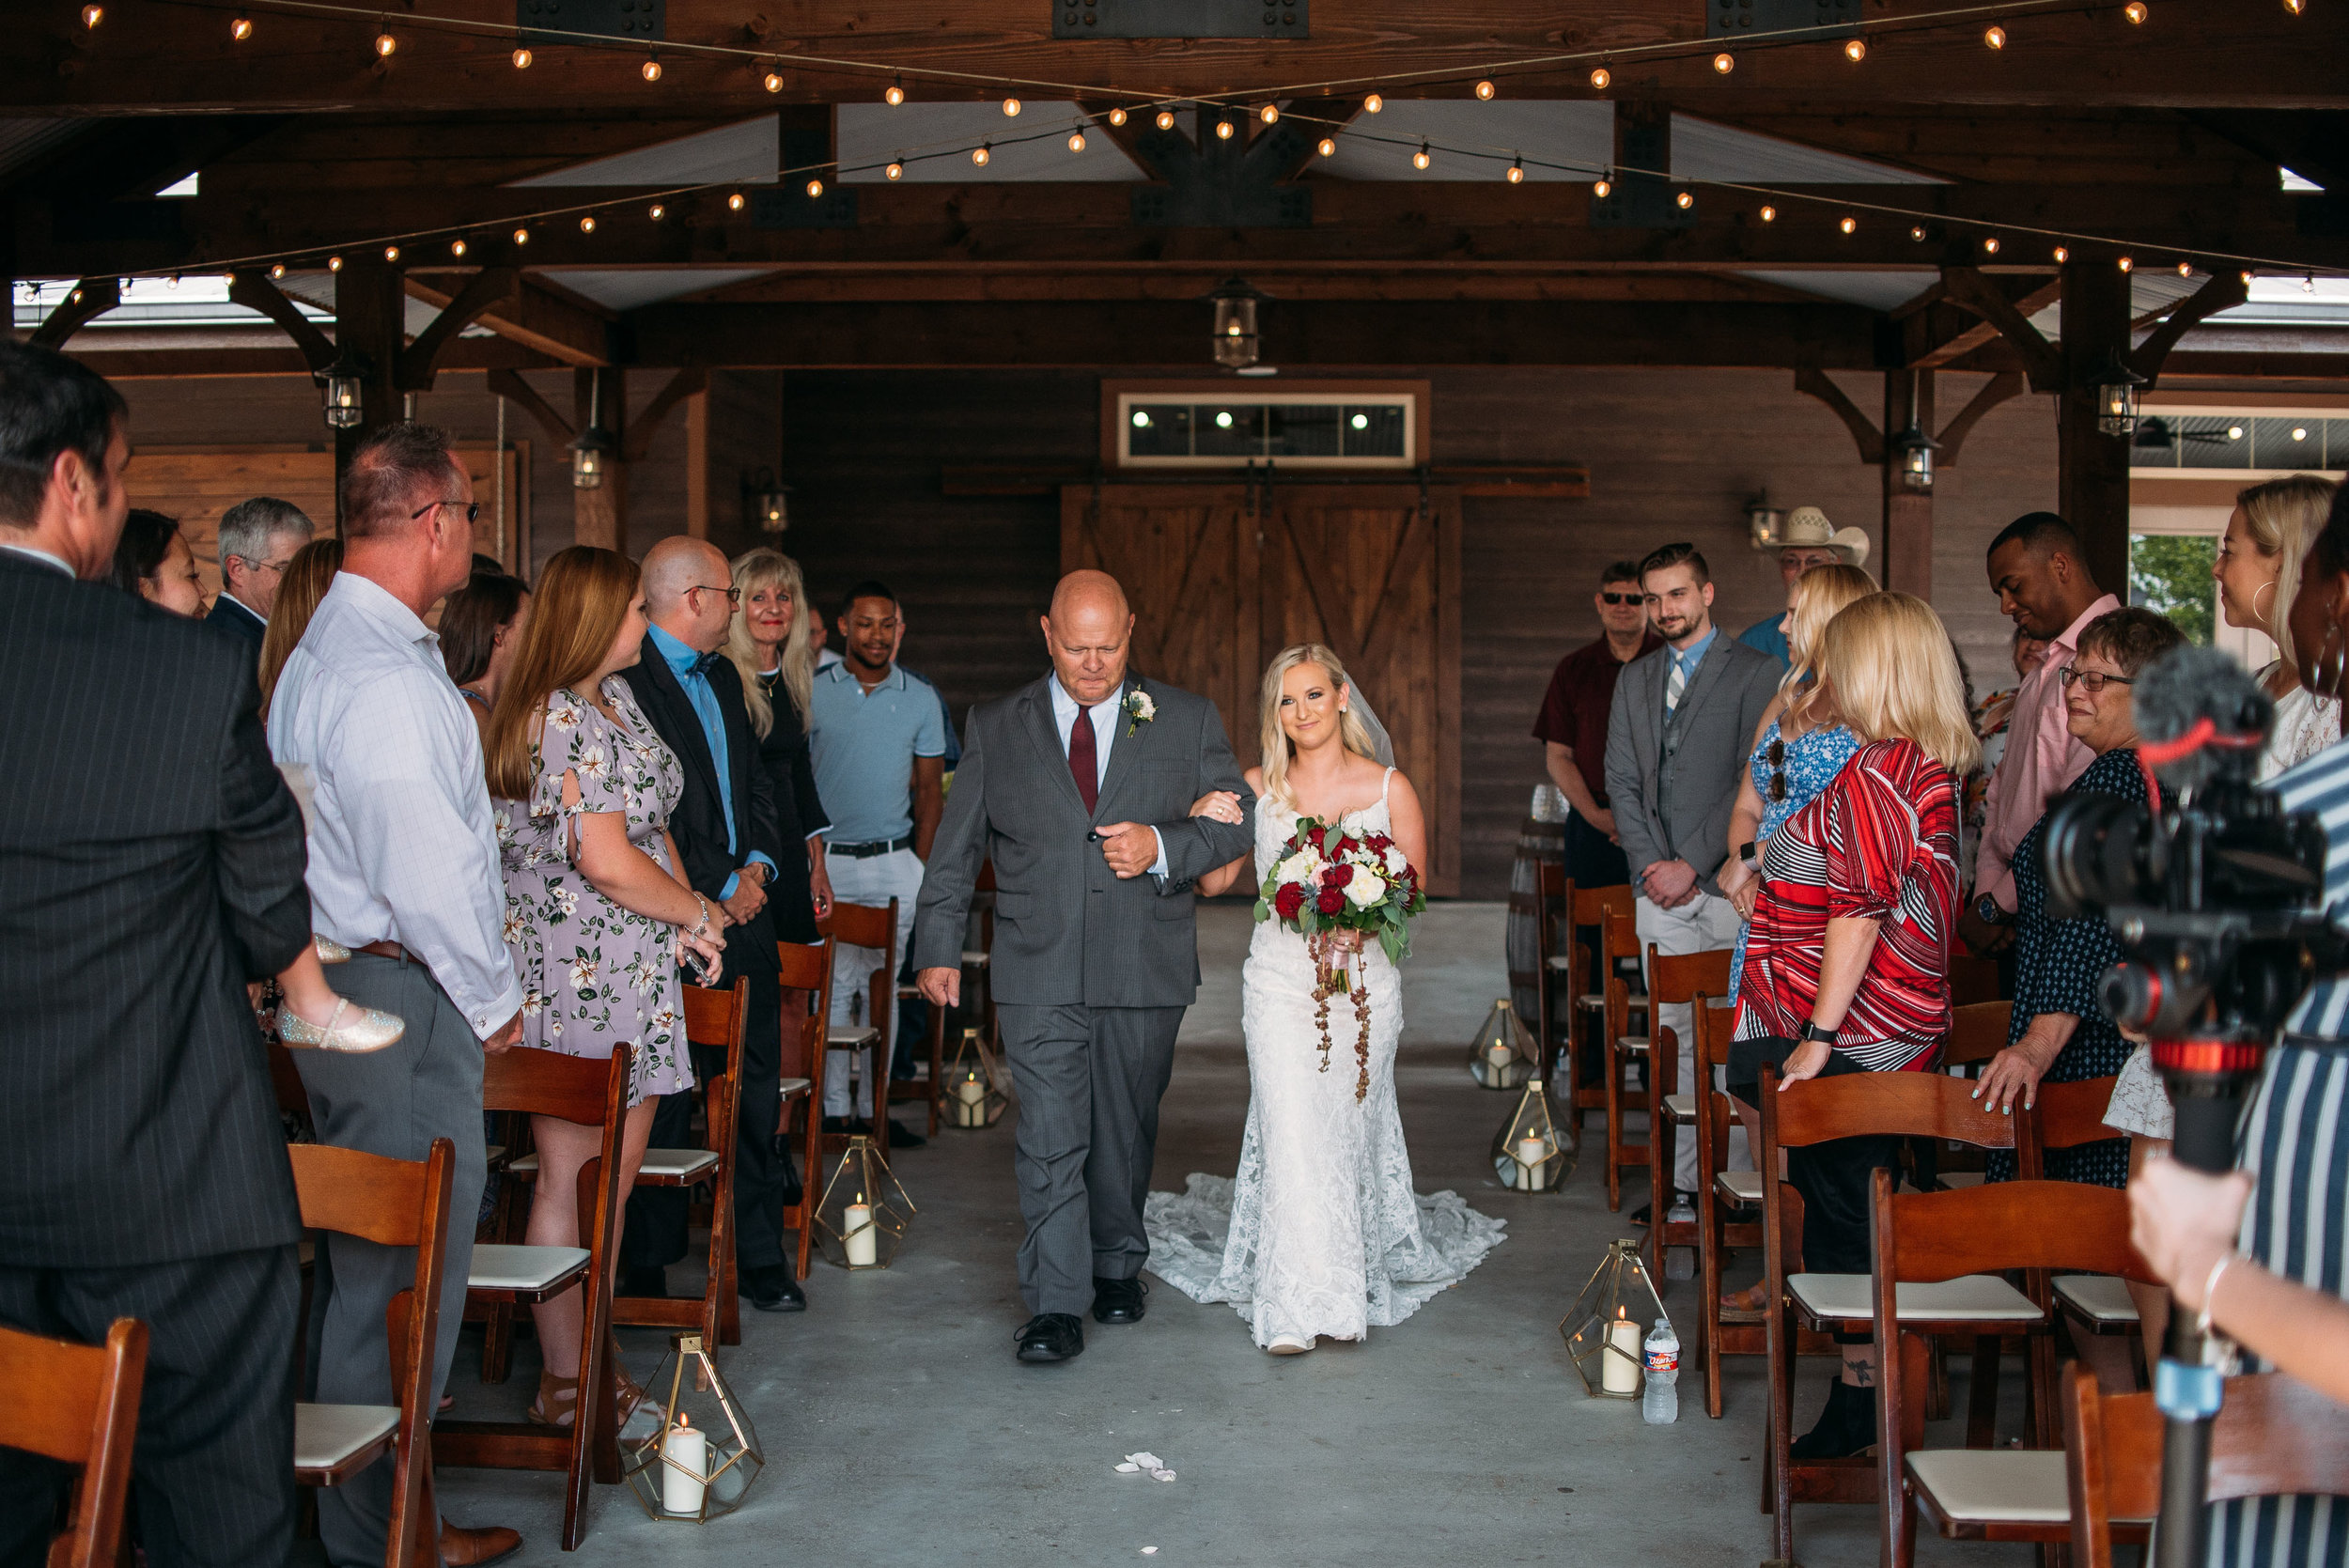 EmilyCody-Peach-Creek-Ranch-Wedding-Ceremony-Bridals-Engagement-College-Station-Photographer-Videographer-San-Angel-Photo-0162.jpg